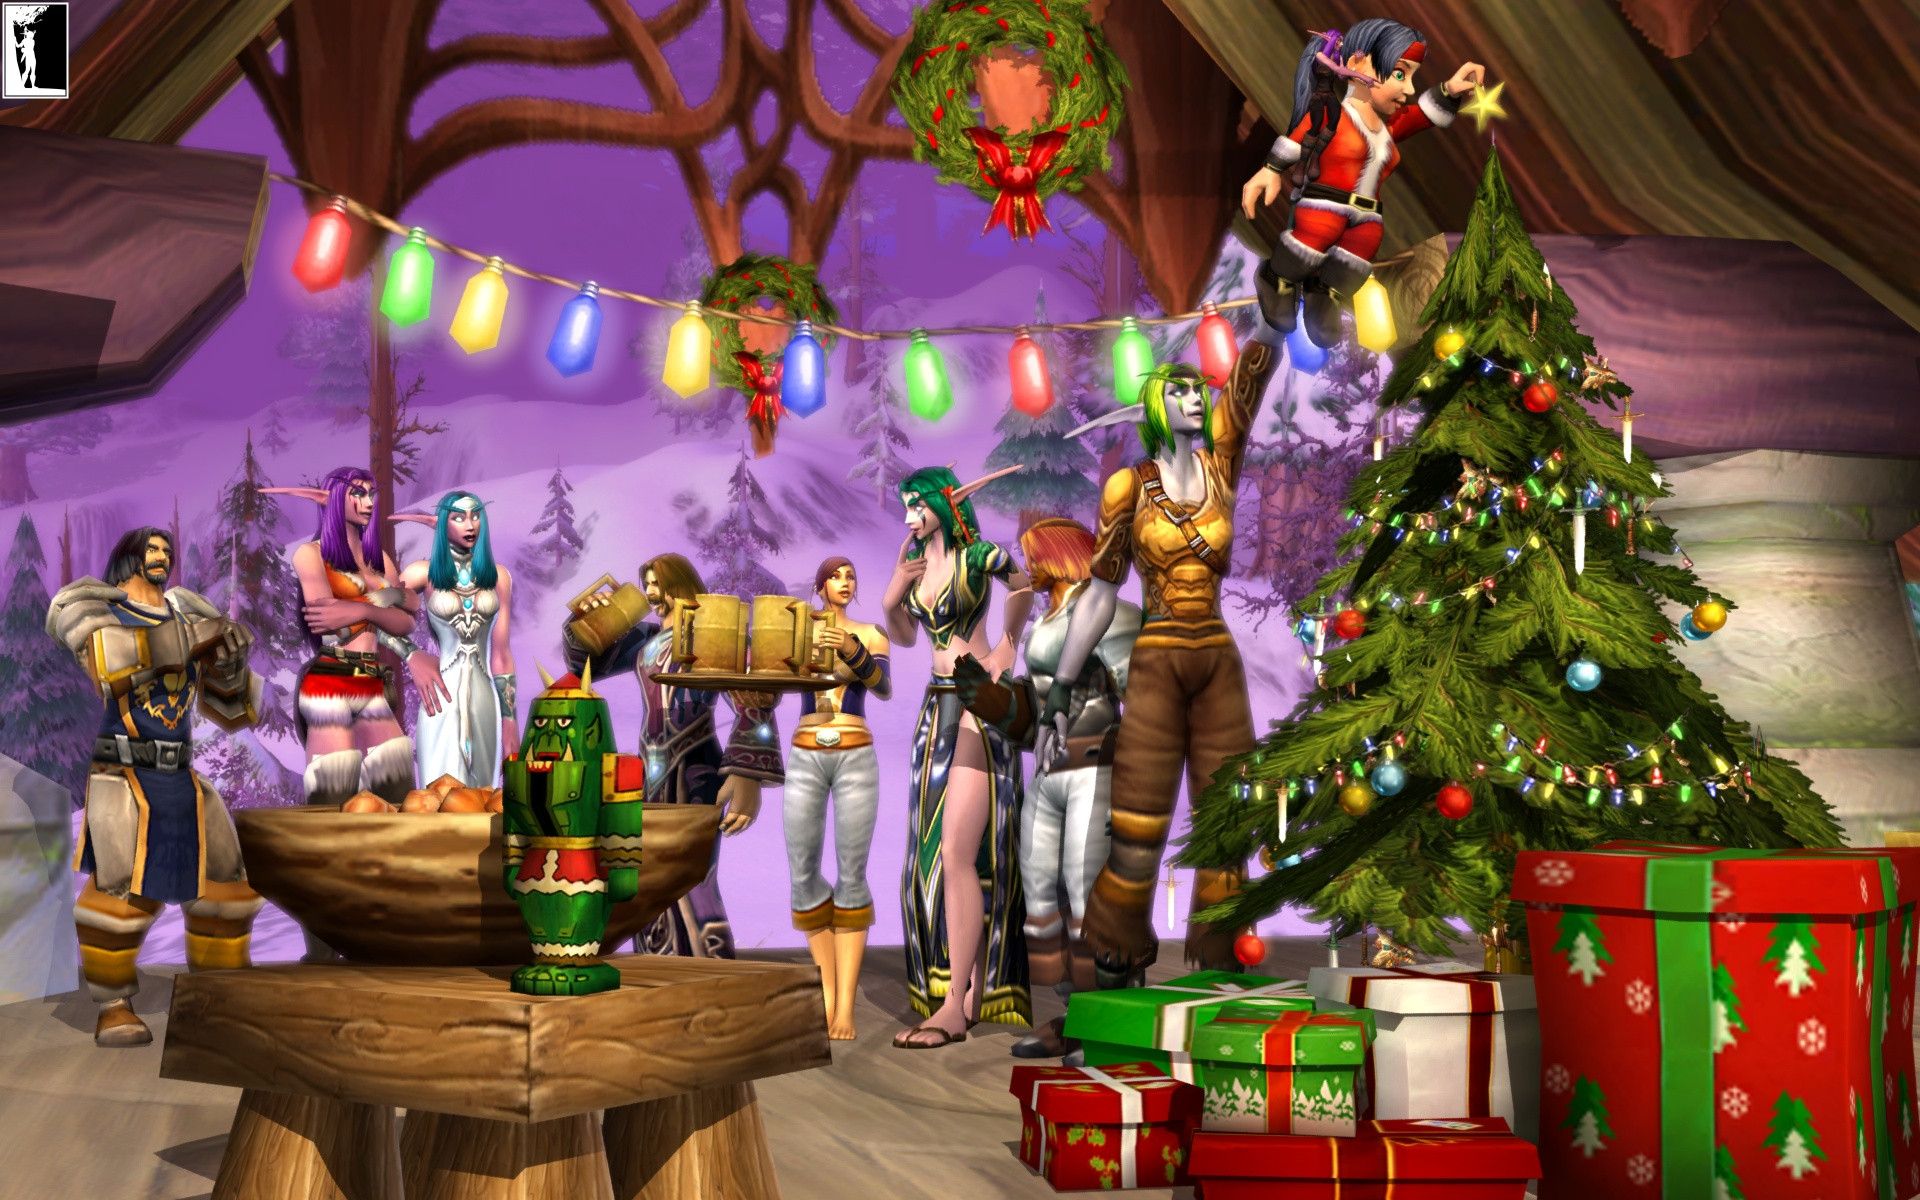 Lord Shiva Black Hd Wallpapers Download World Of Warcraft Christmas Wallpaper Gallery